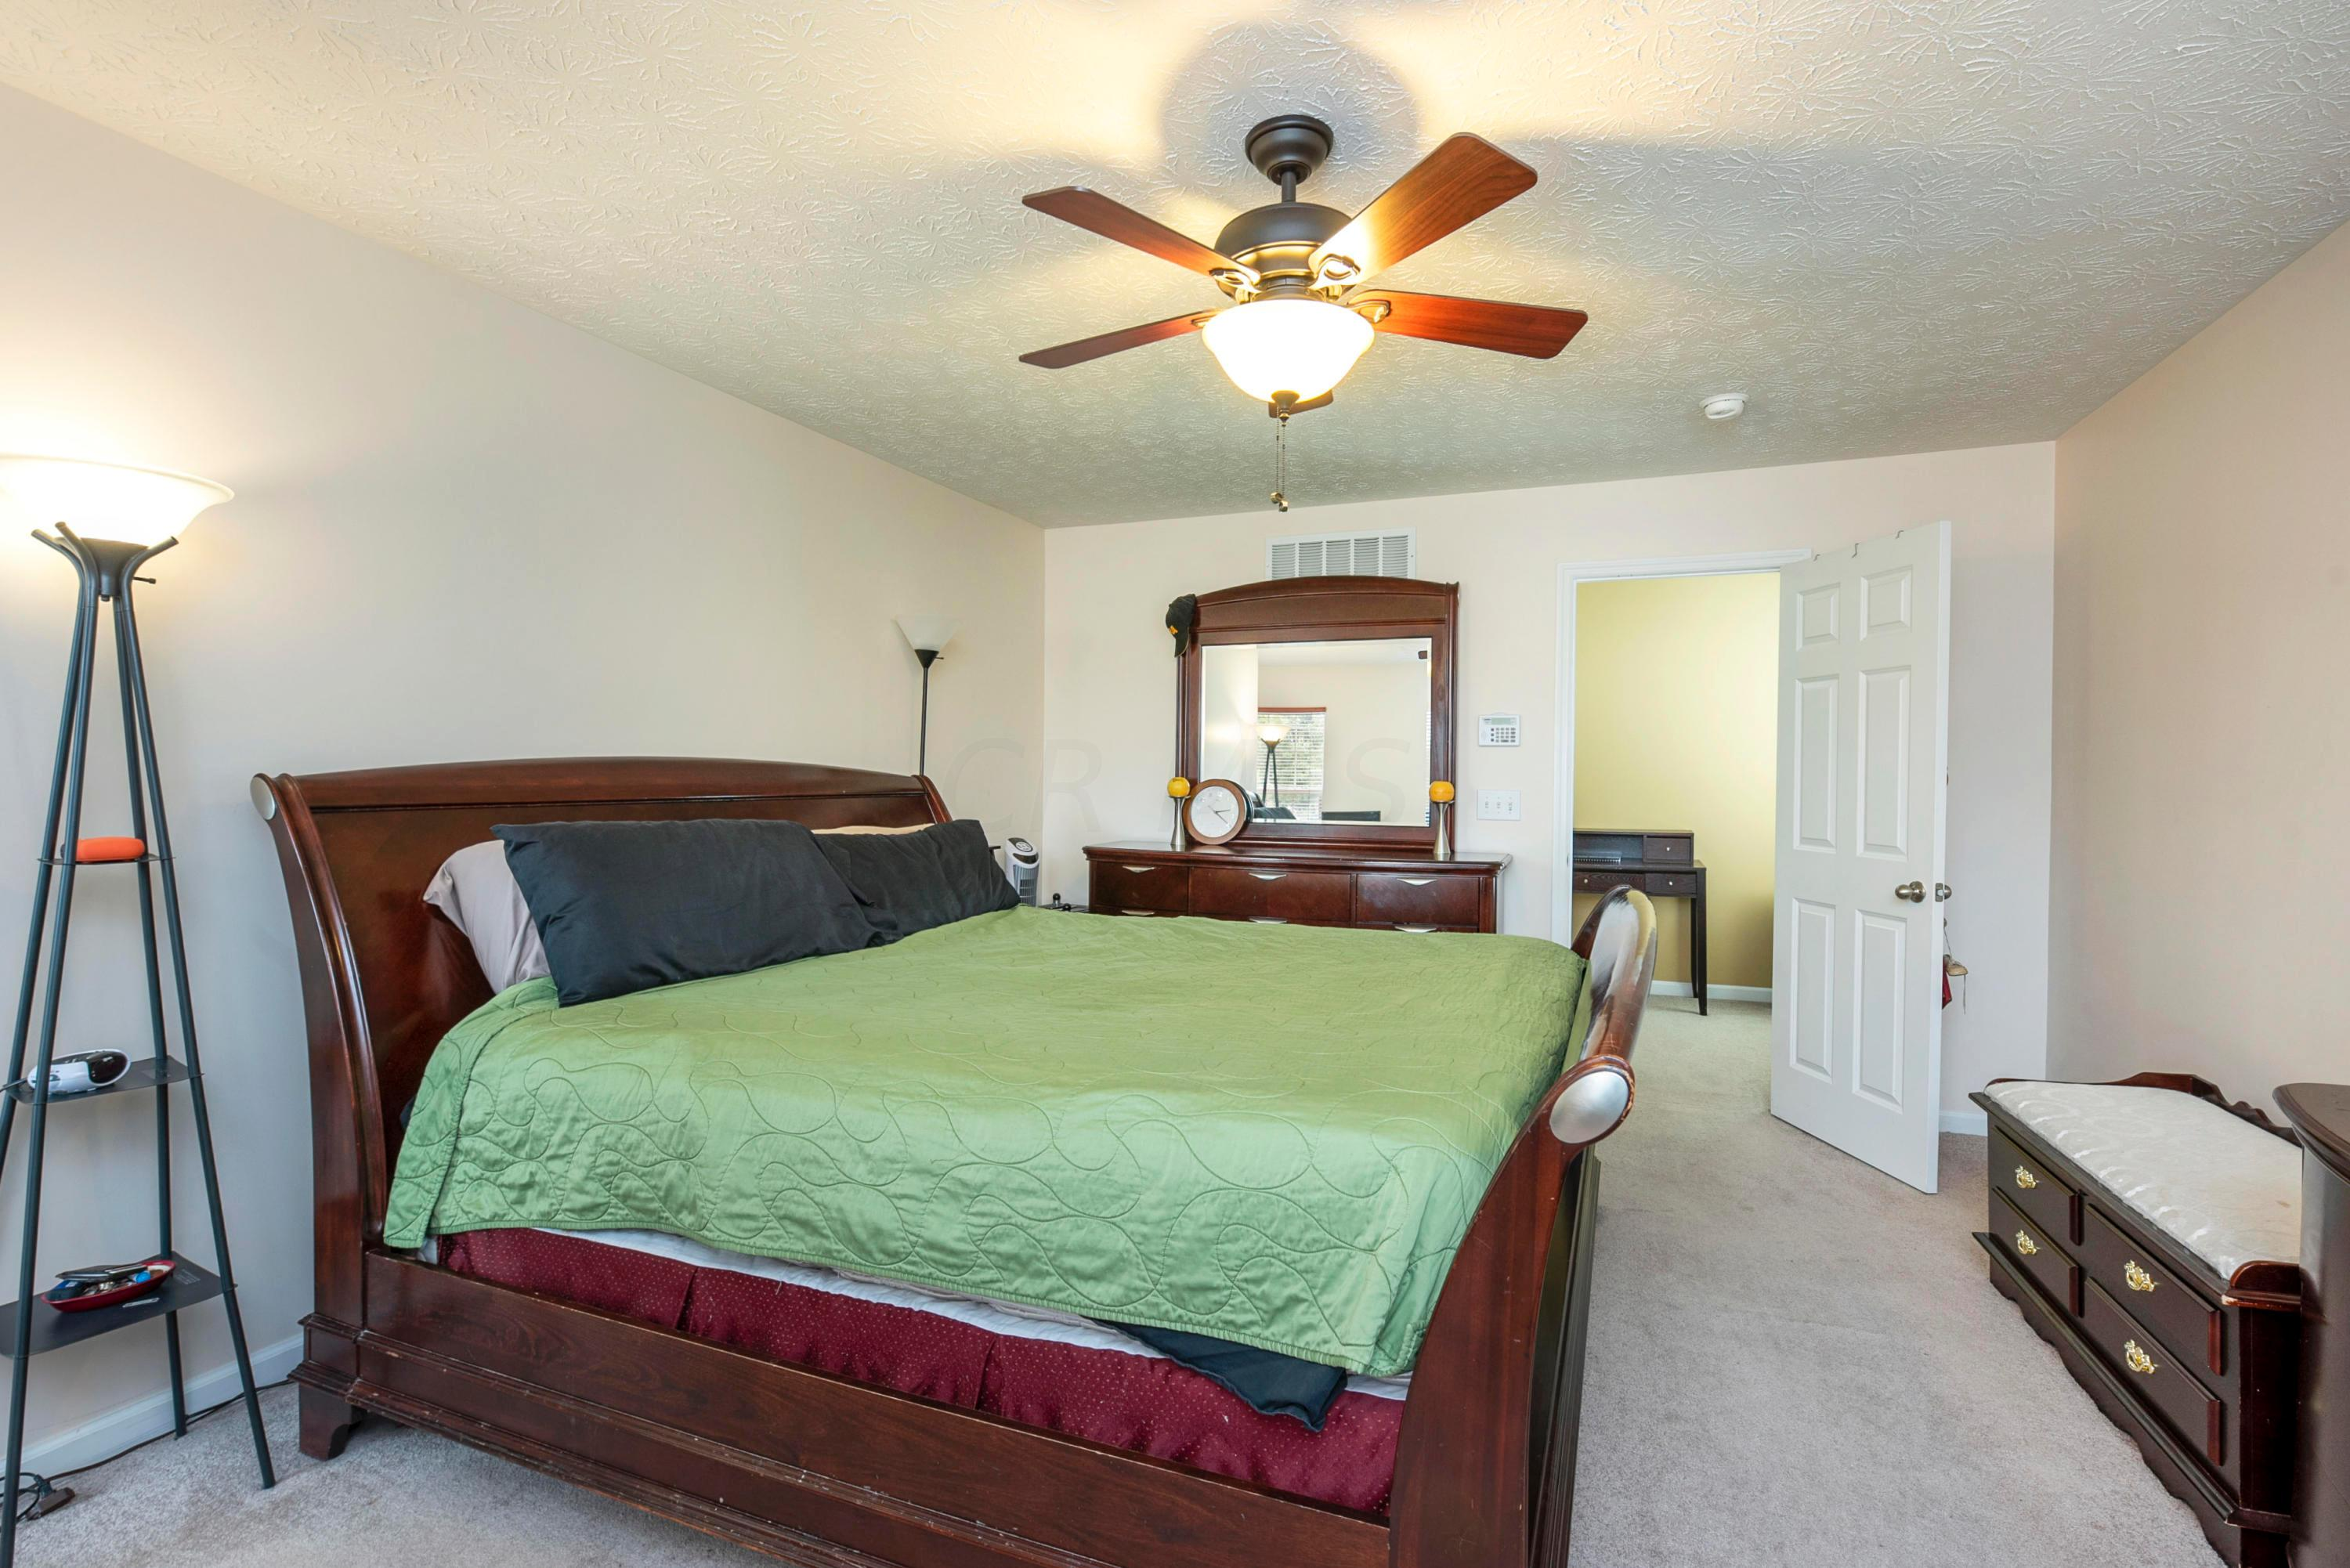 3847 Winding Path Drive, Canal Winchester, Ohio 43110, 4 Bedrooms Bedrooms, ,3 BathroomsBathrooms,Residential,For Sale,Winding Path,220032159